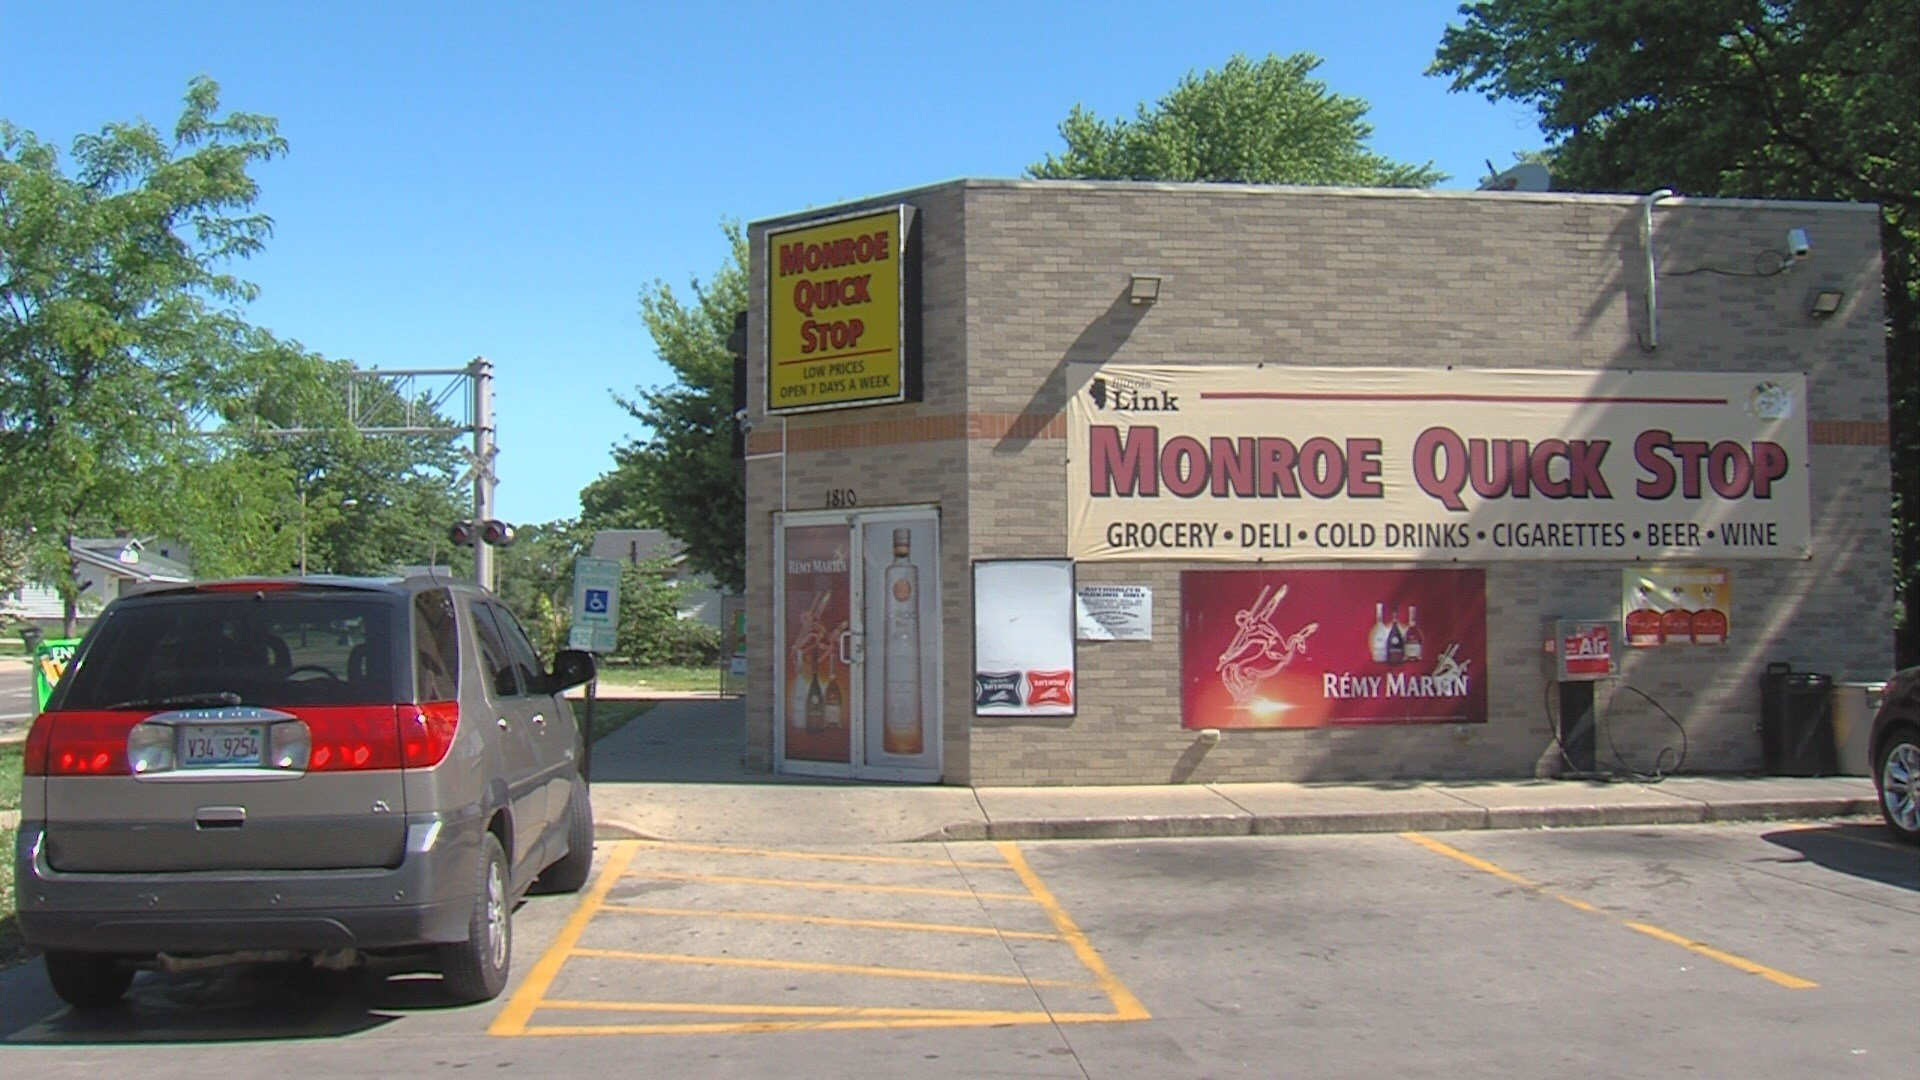 Decatur Ill Wand Around 9 30 P M Friday Night Gun Shots Were Fired At The Quick Stop Convenience In